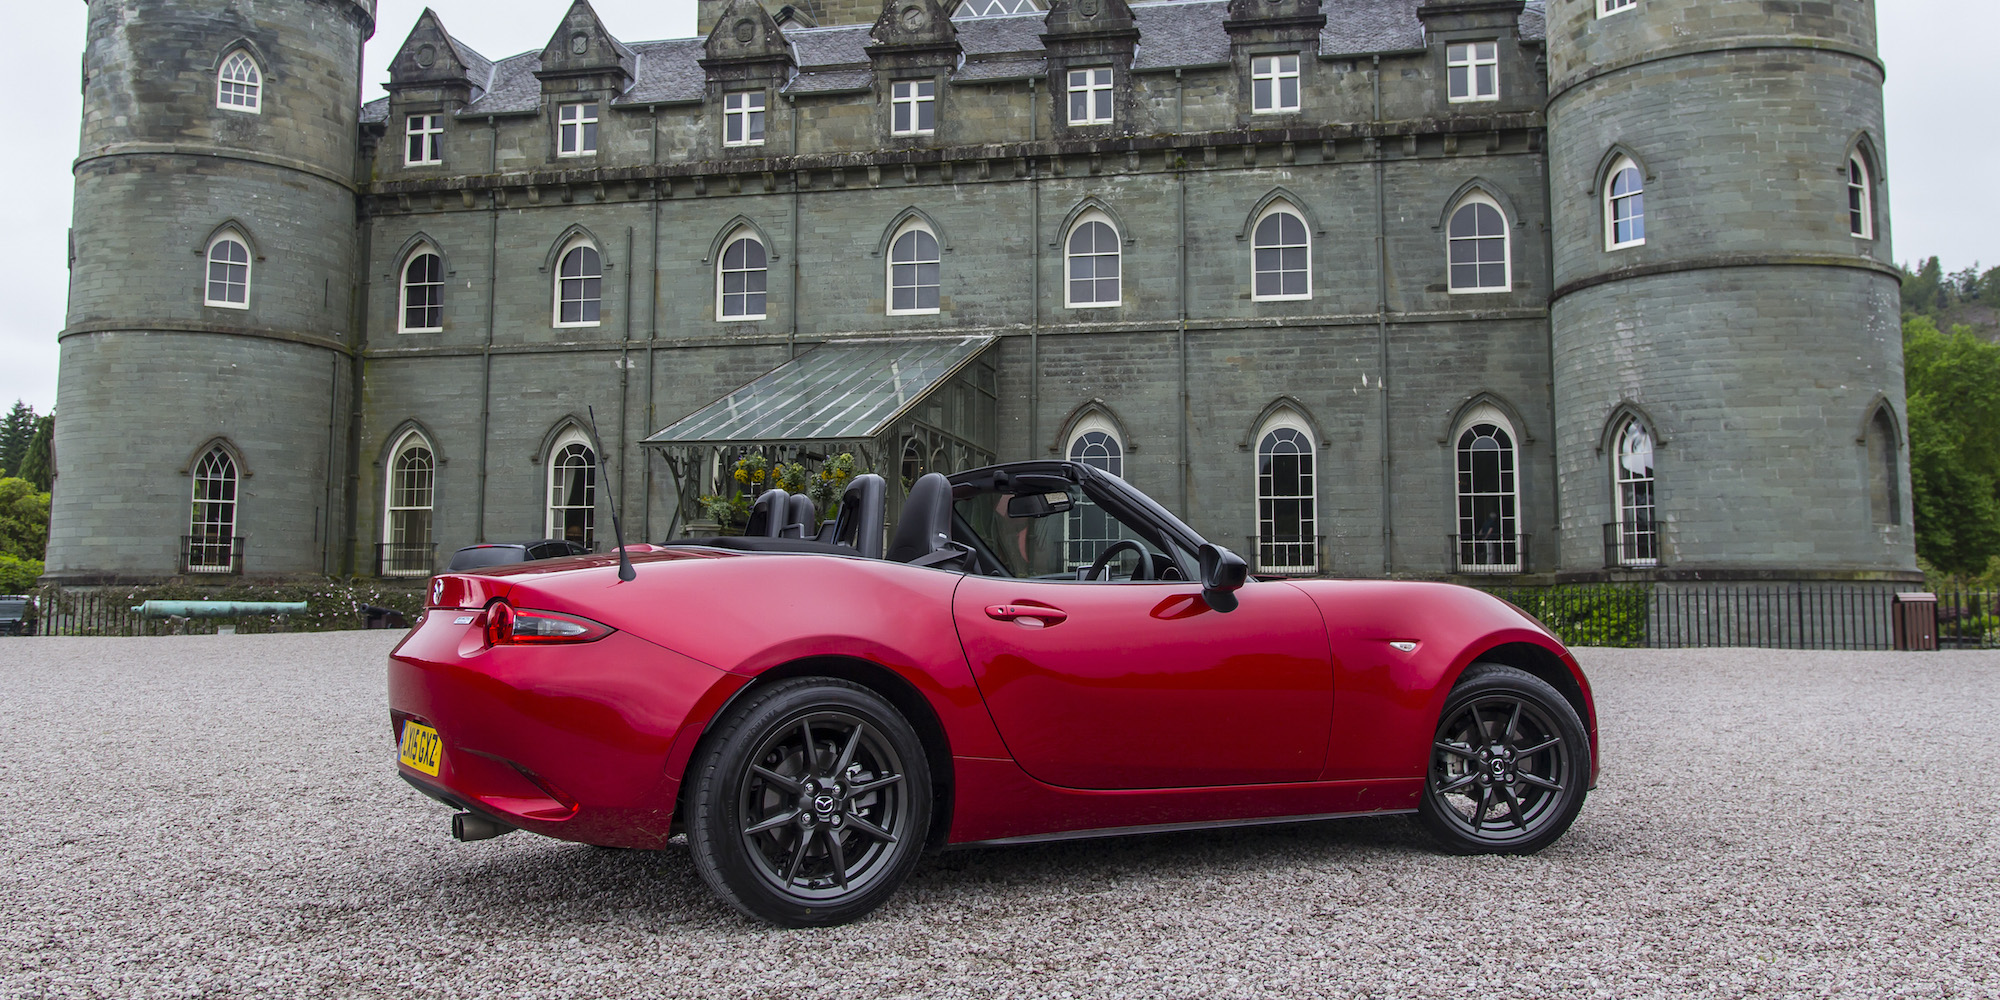 2016 Mazda Mx 5 Rear Side View (Photo 25 of 31)